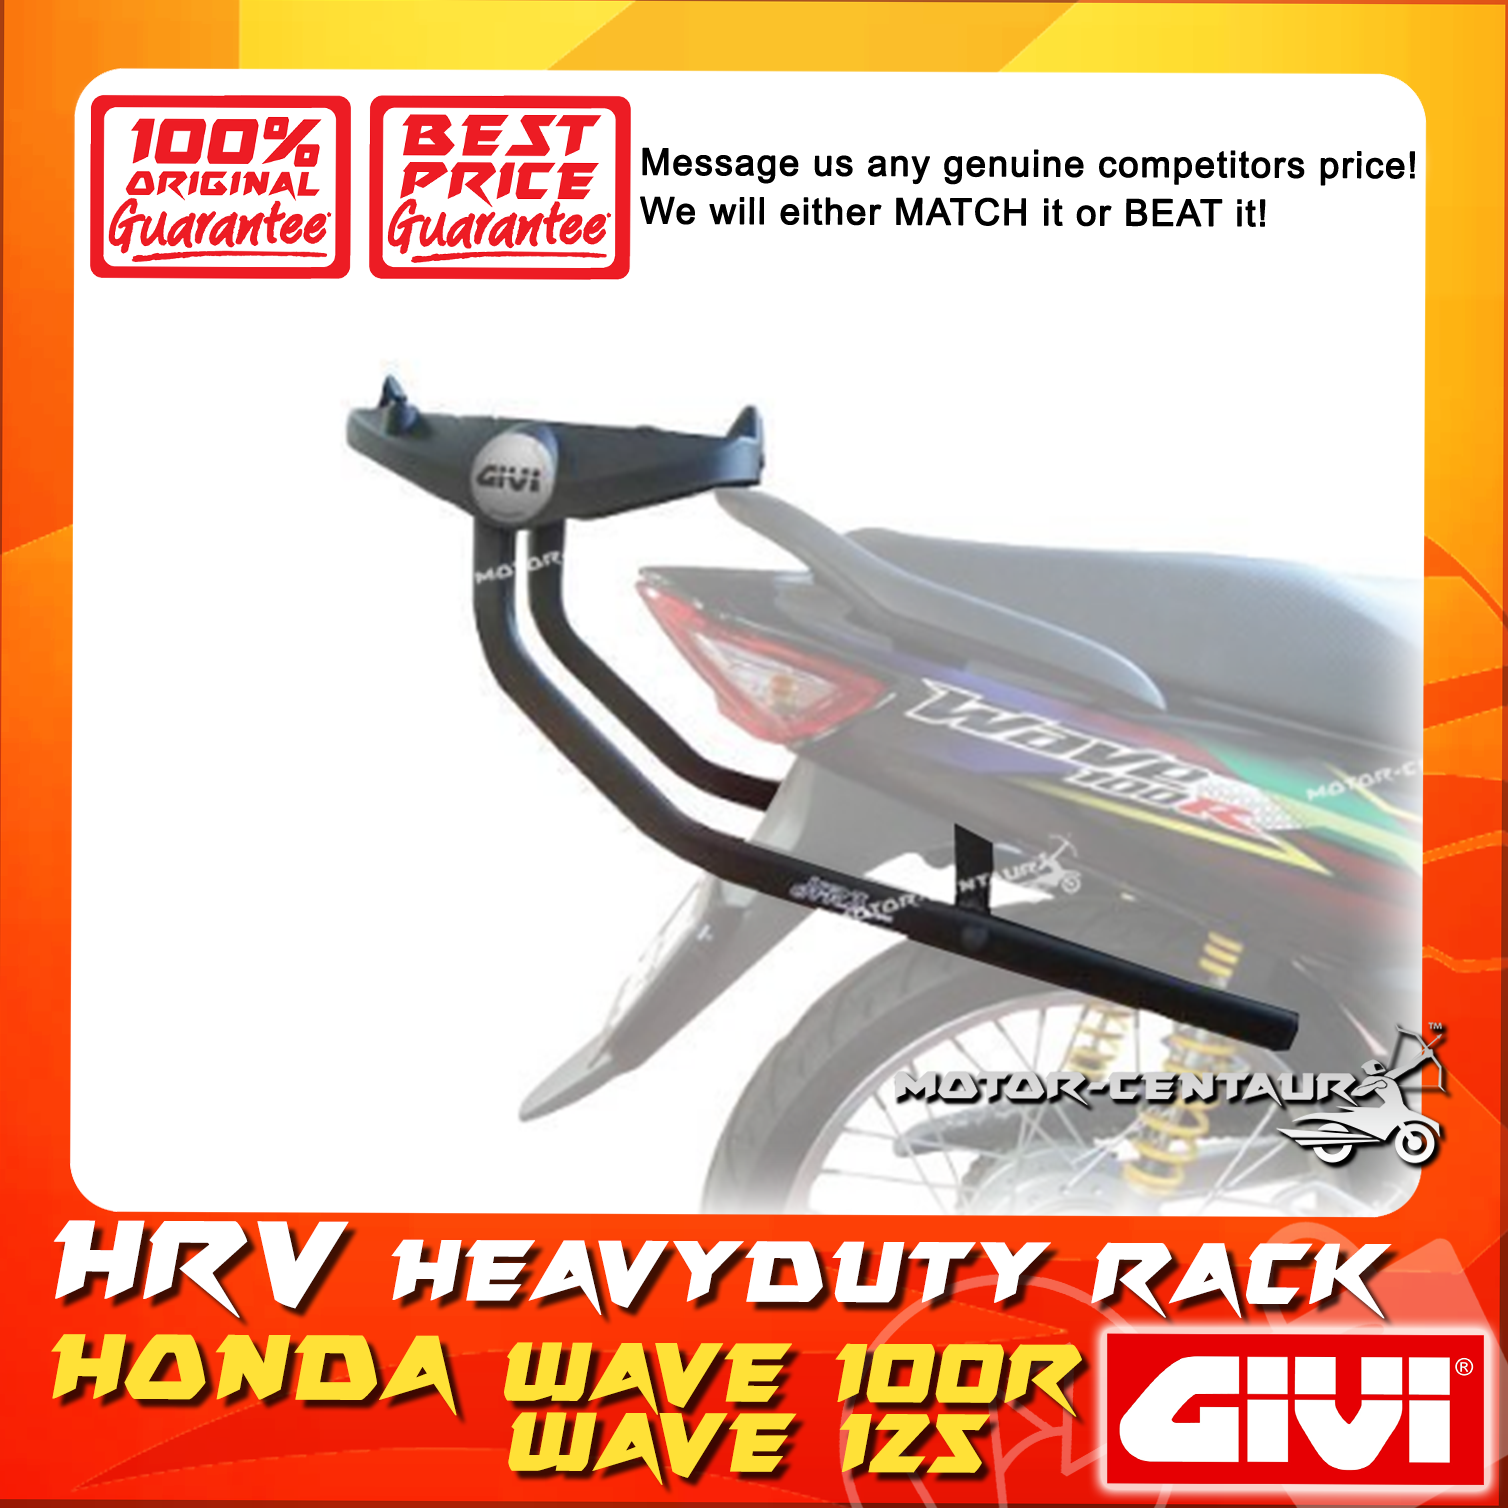 GIVI HEAVY DUTY RACK HRV HONDA WAVE 100R, 125